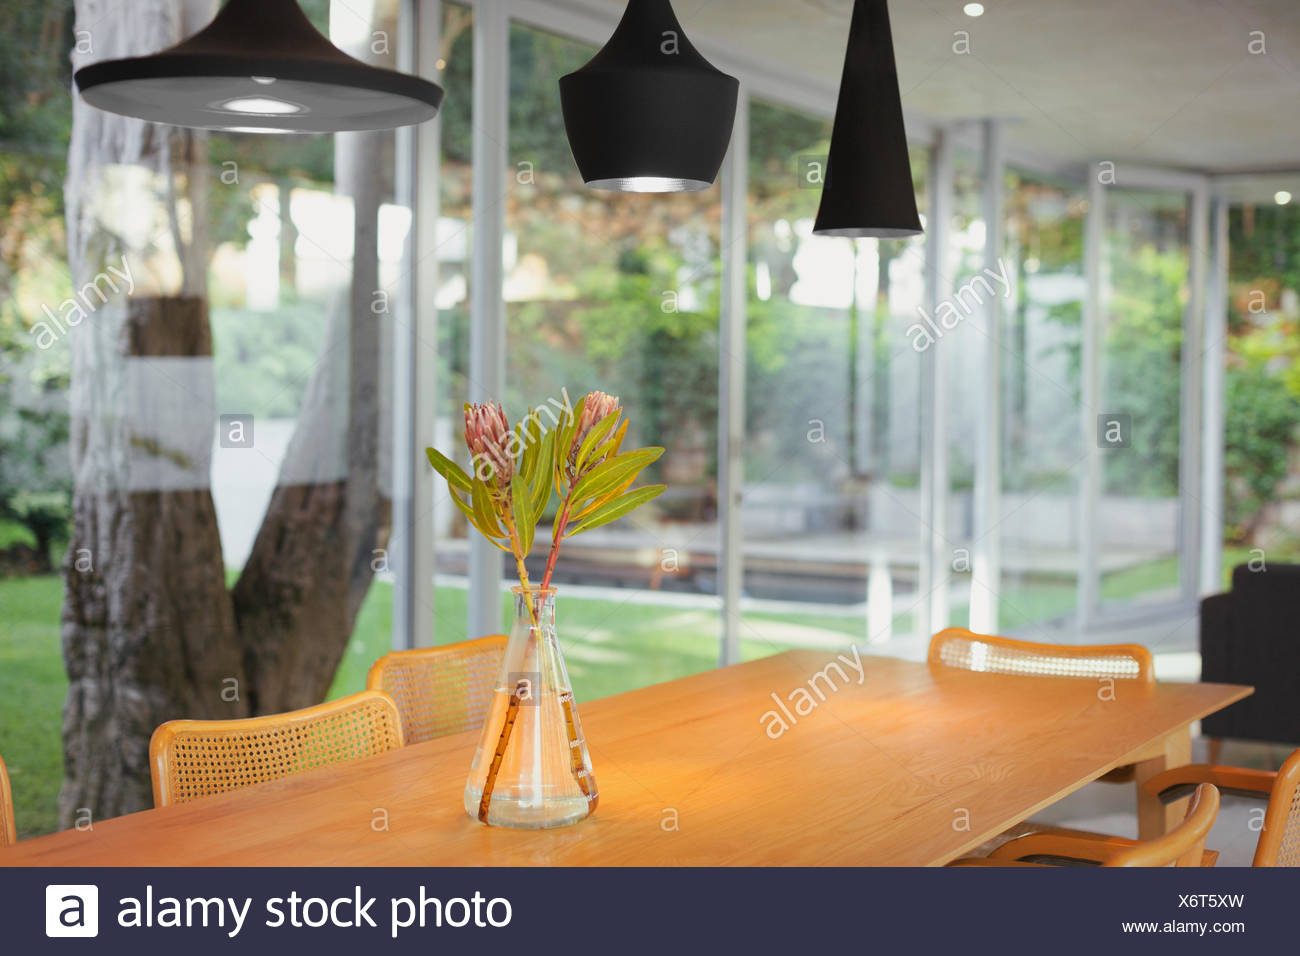 Modern Black Pendant Lights Hanging Over Bouquet On Dining Room Table Stock Photo Alamy